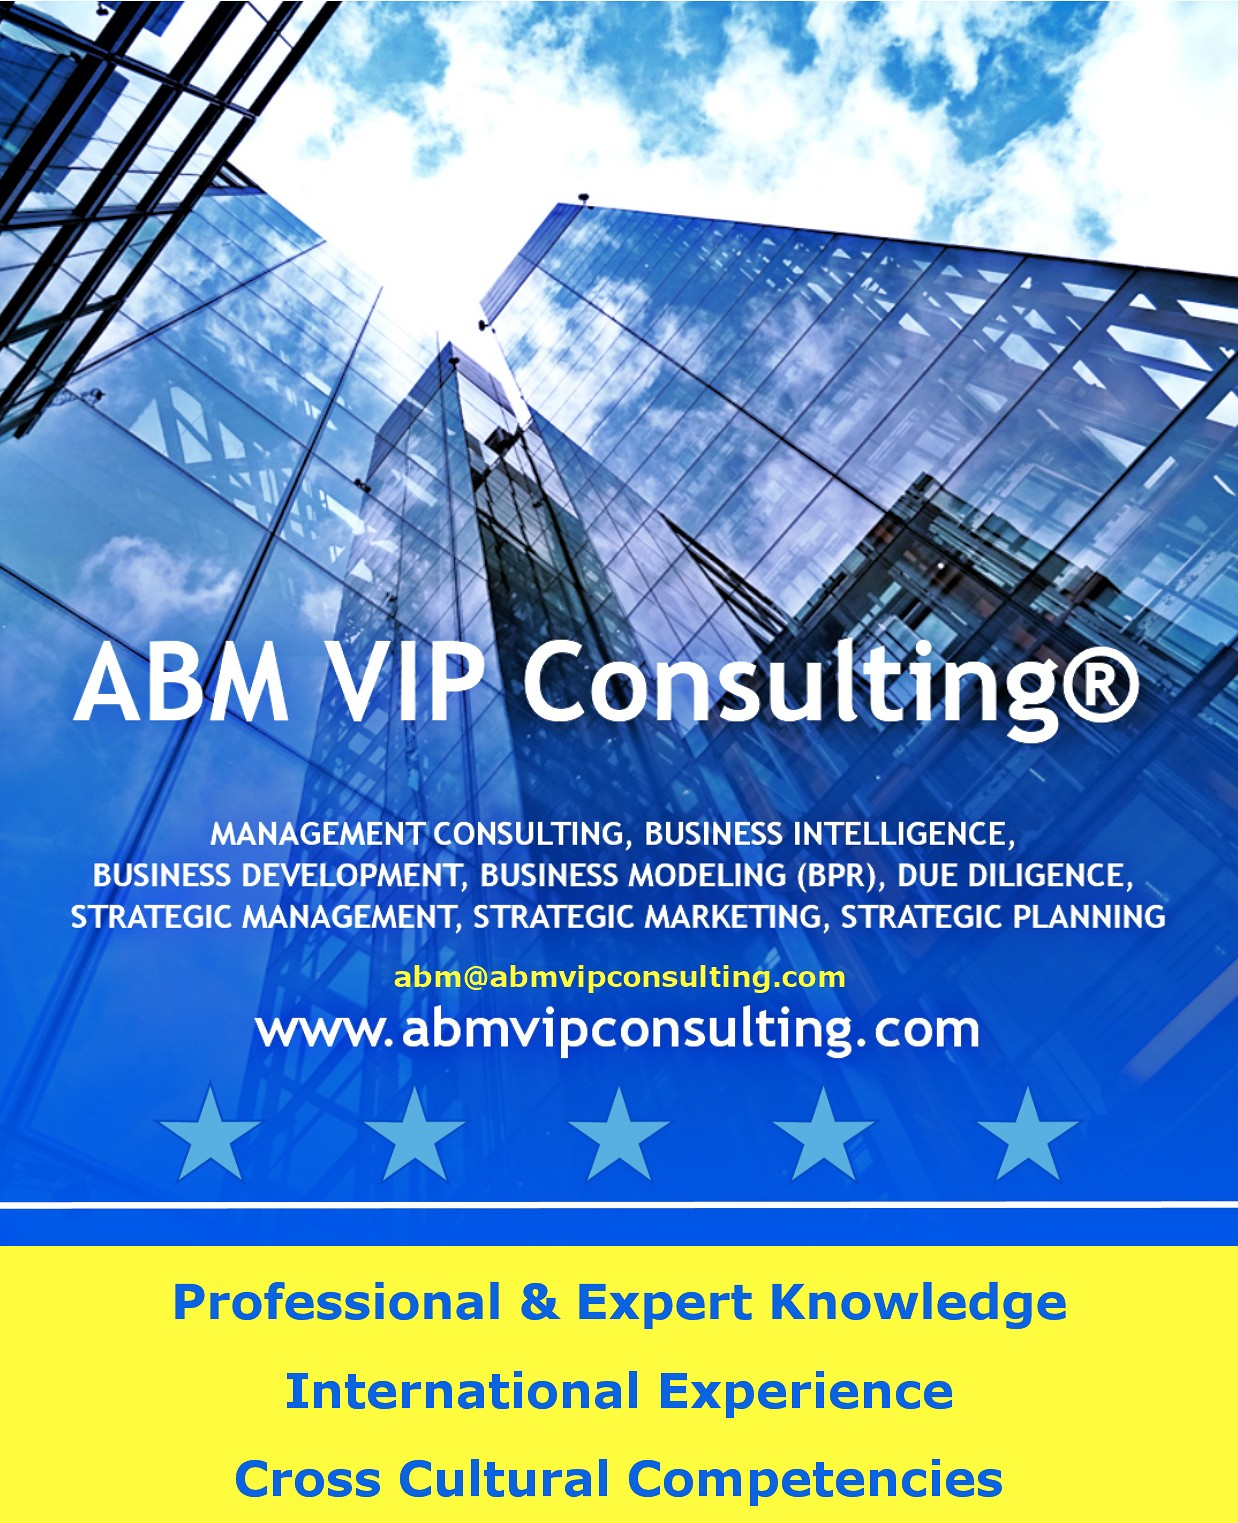 About ABM VIP Consulting® Management Consulting Firm